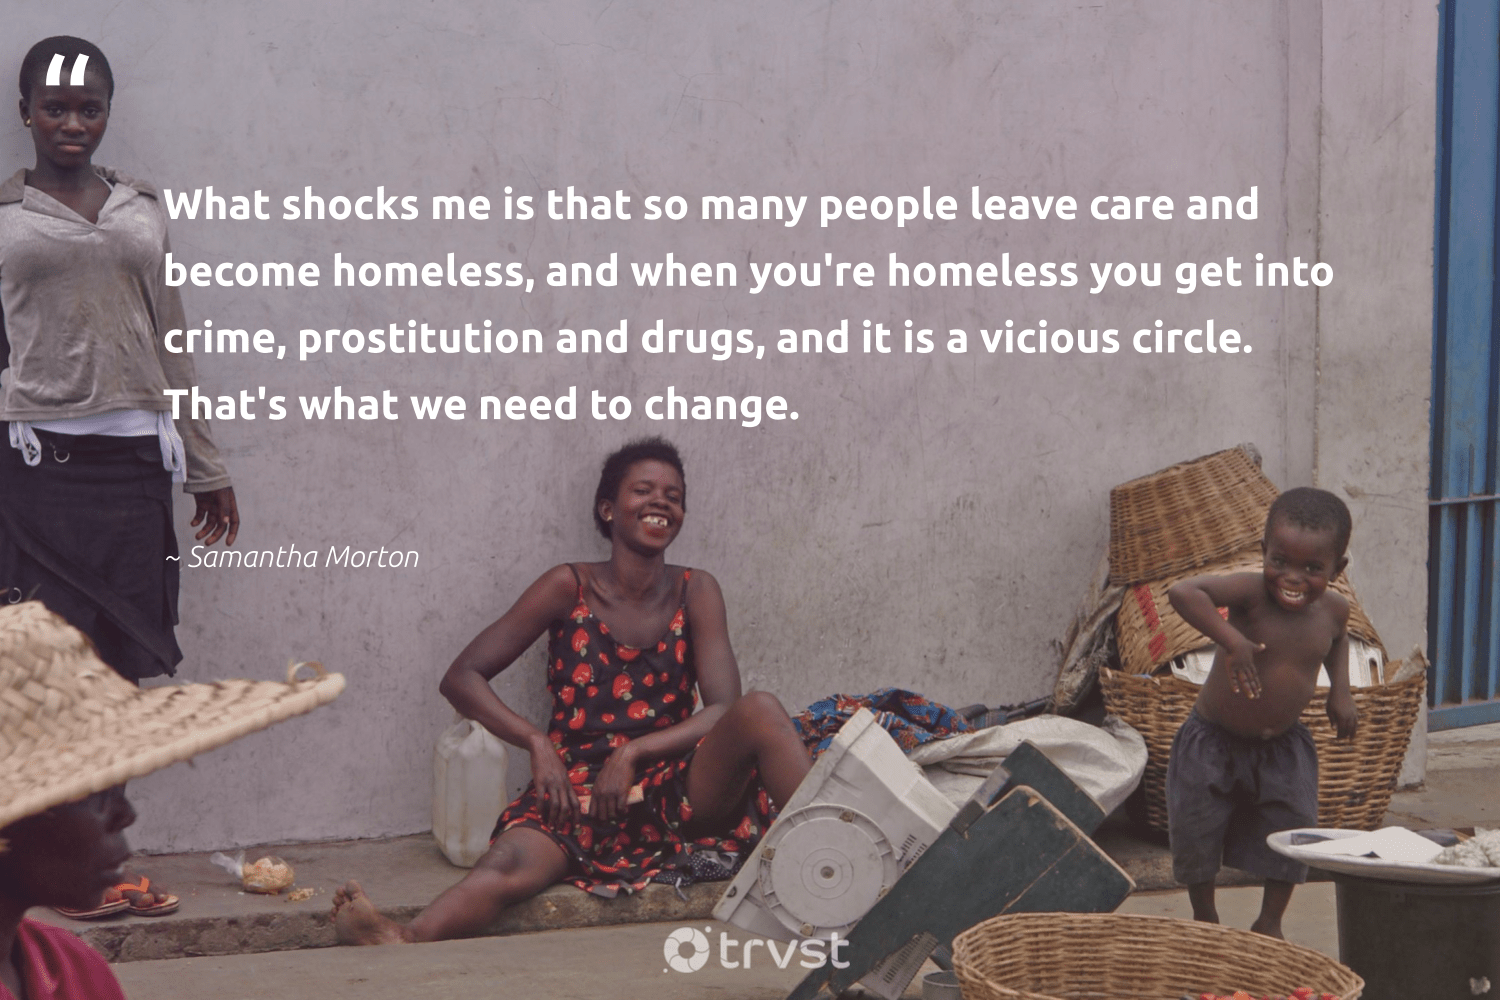 """""""What shocks me is that so many people leave care and become homeless, and when you're homeless you get into crime, prostitution and drugs, and it is a vicious circle. That's what we need to change.""""  - Samantha Morton #trvst #quotes #homelessness #homeless #makeadifference #weareallone #dosomething #inclusion #sustainablefutures #takeaction #equalopportunity #equalrights"""